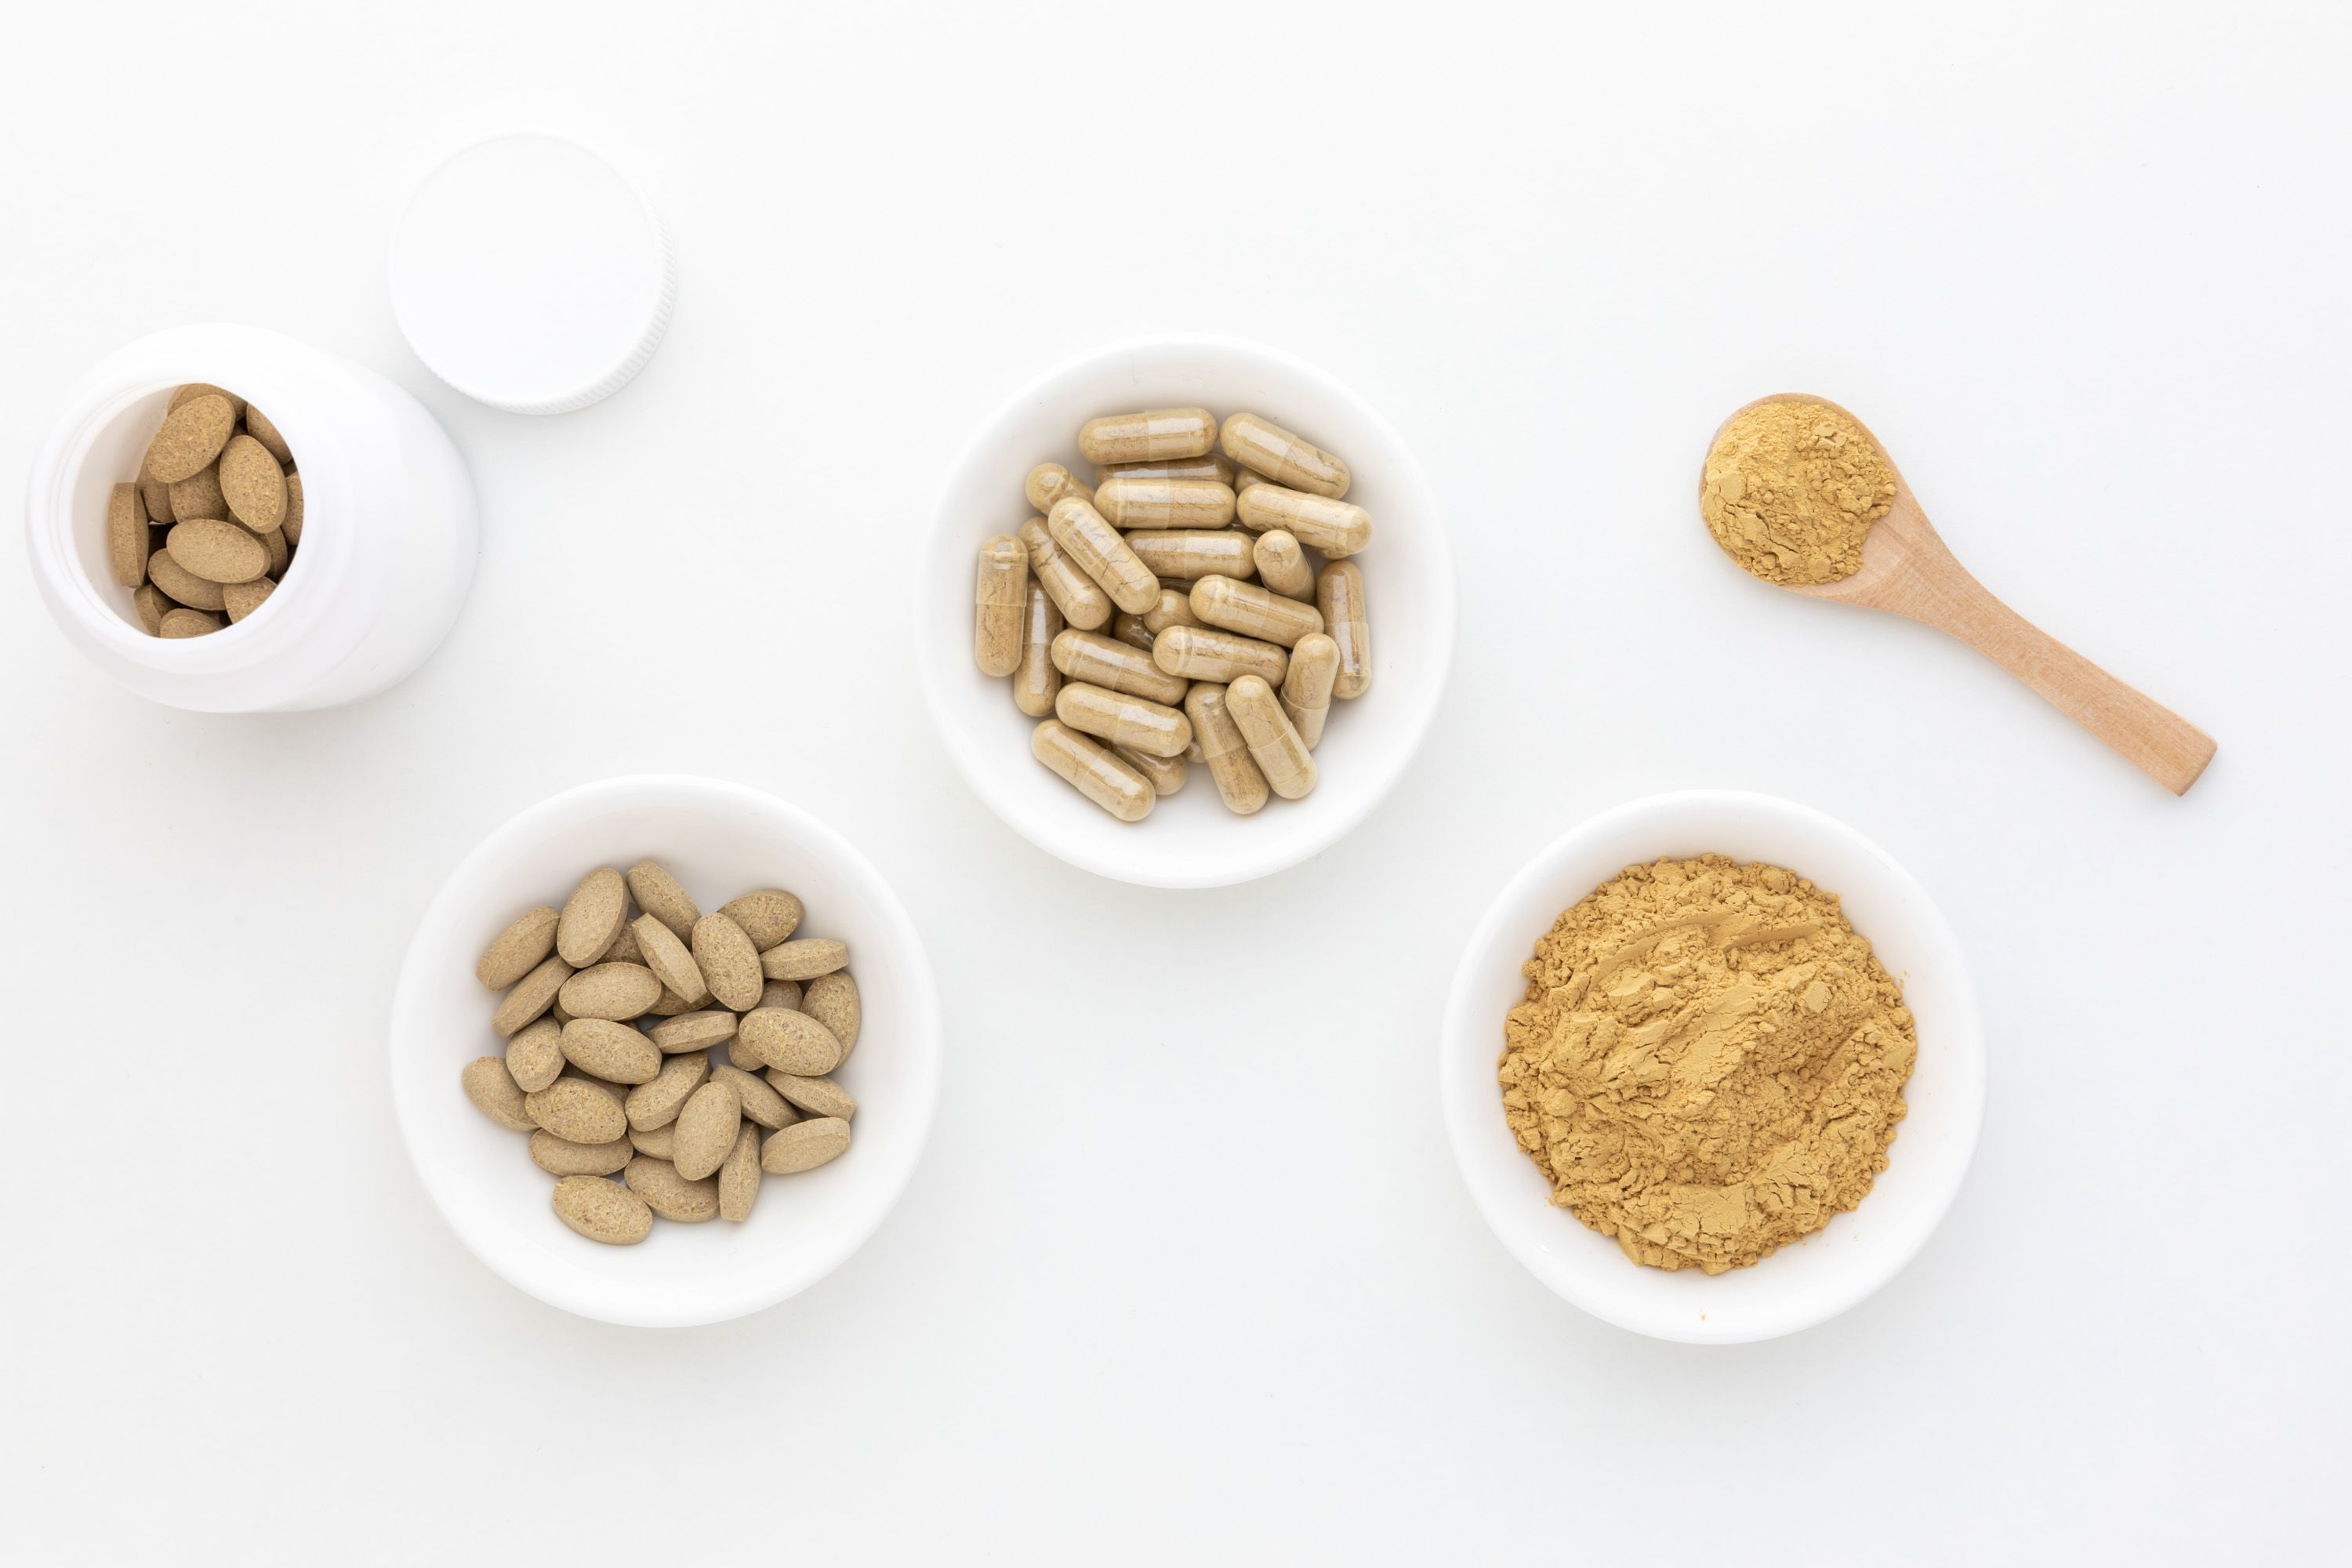 Triphala: Benefits, Side Effects, Dosage, Interactions